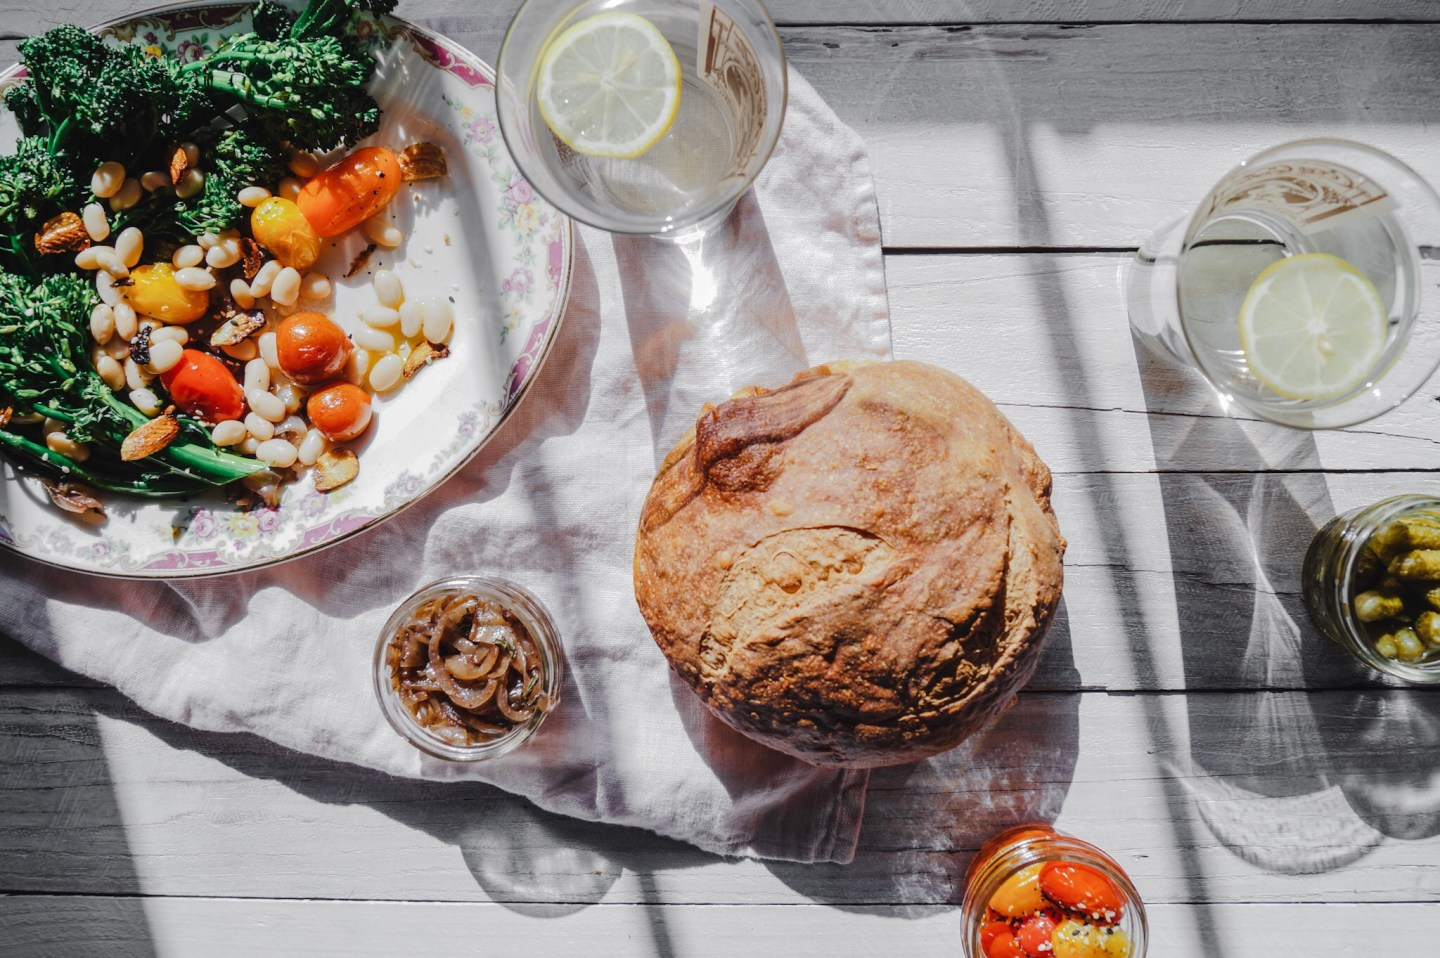 Crusty rustic homemade bread and a roasted tomato salad.